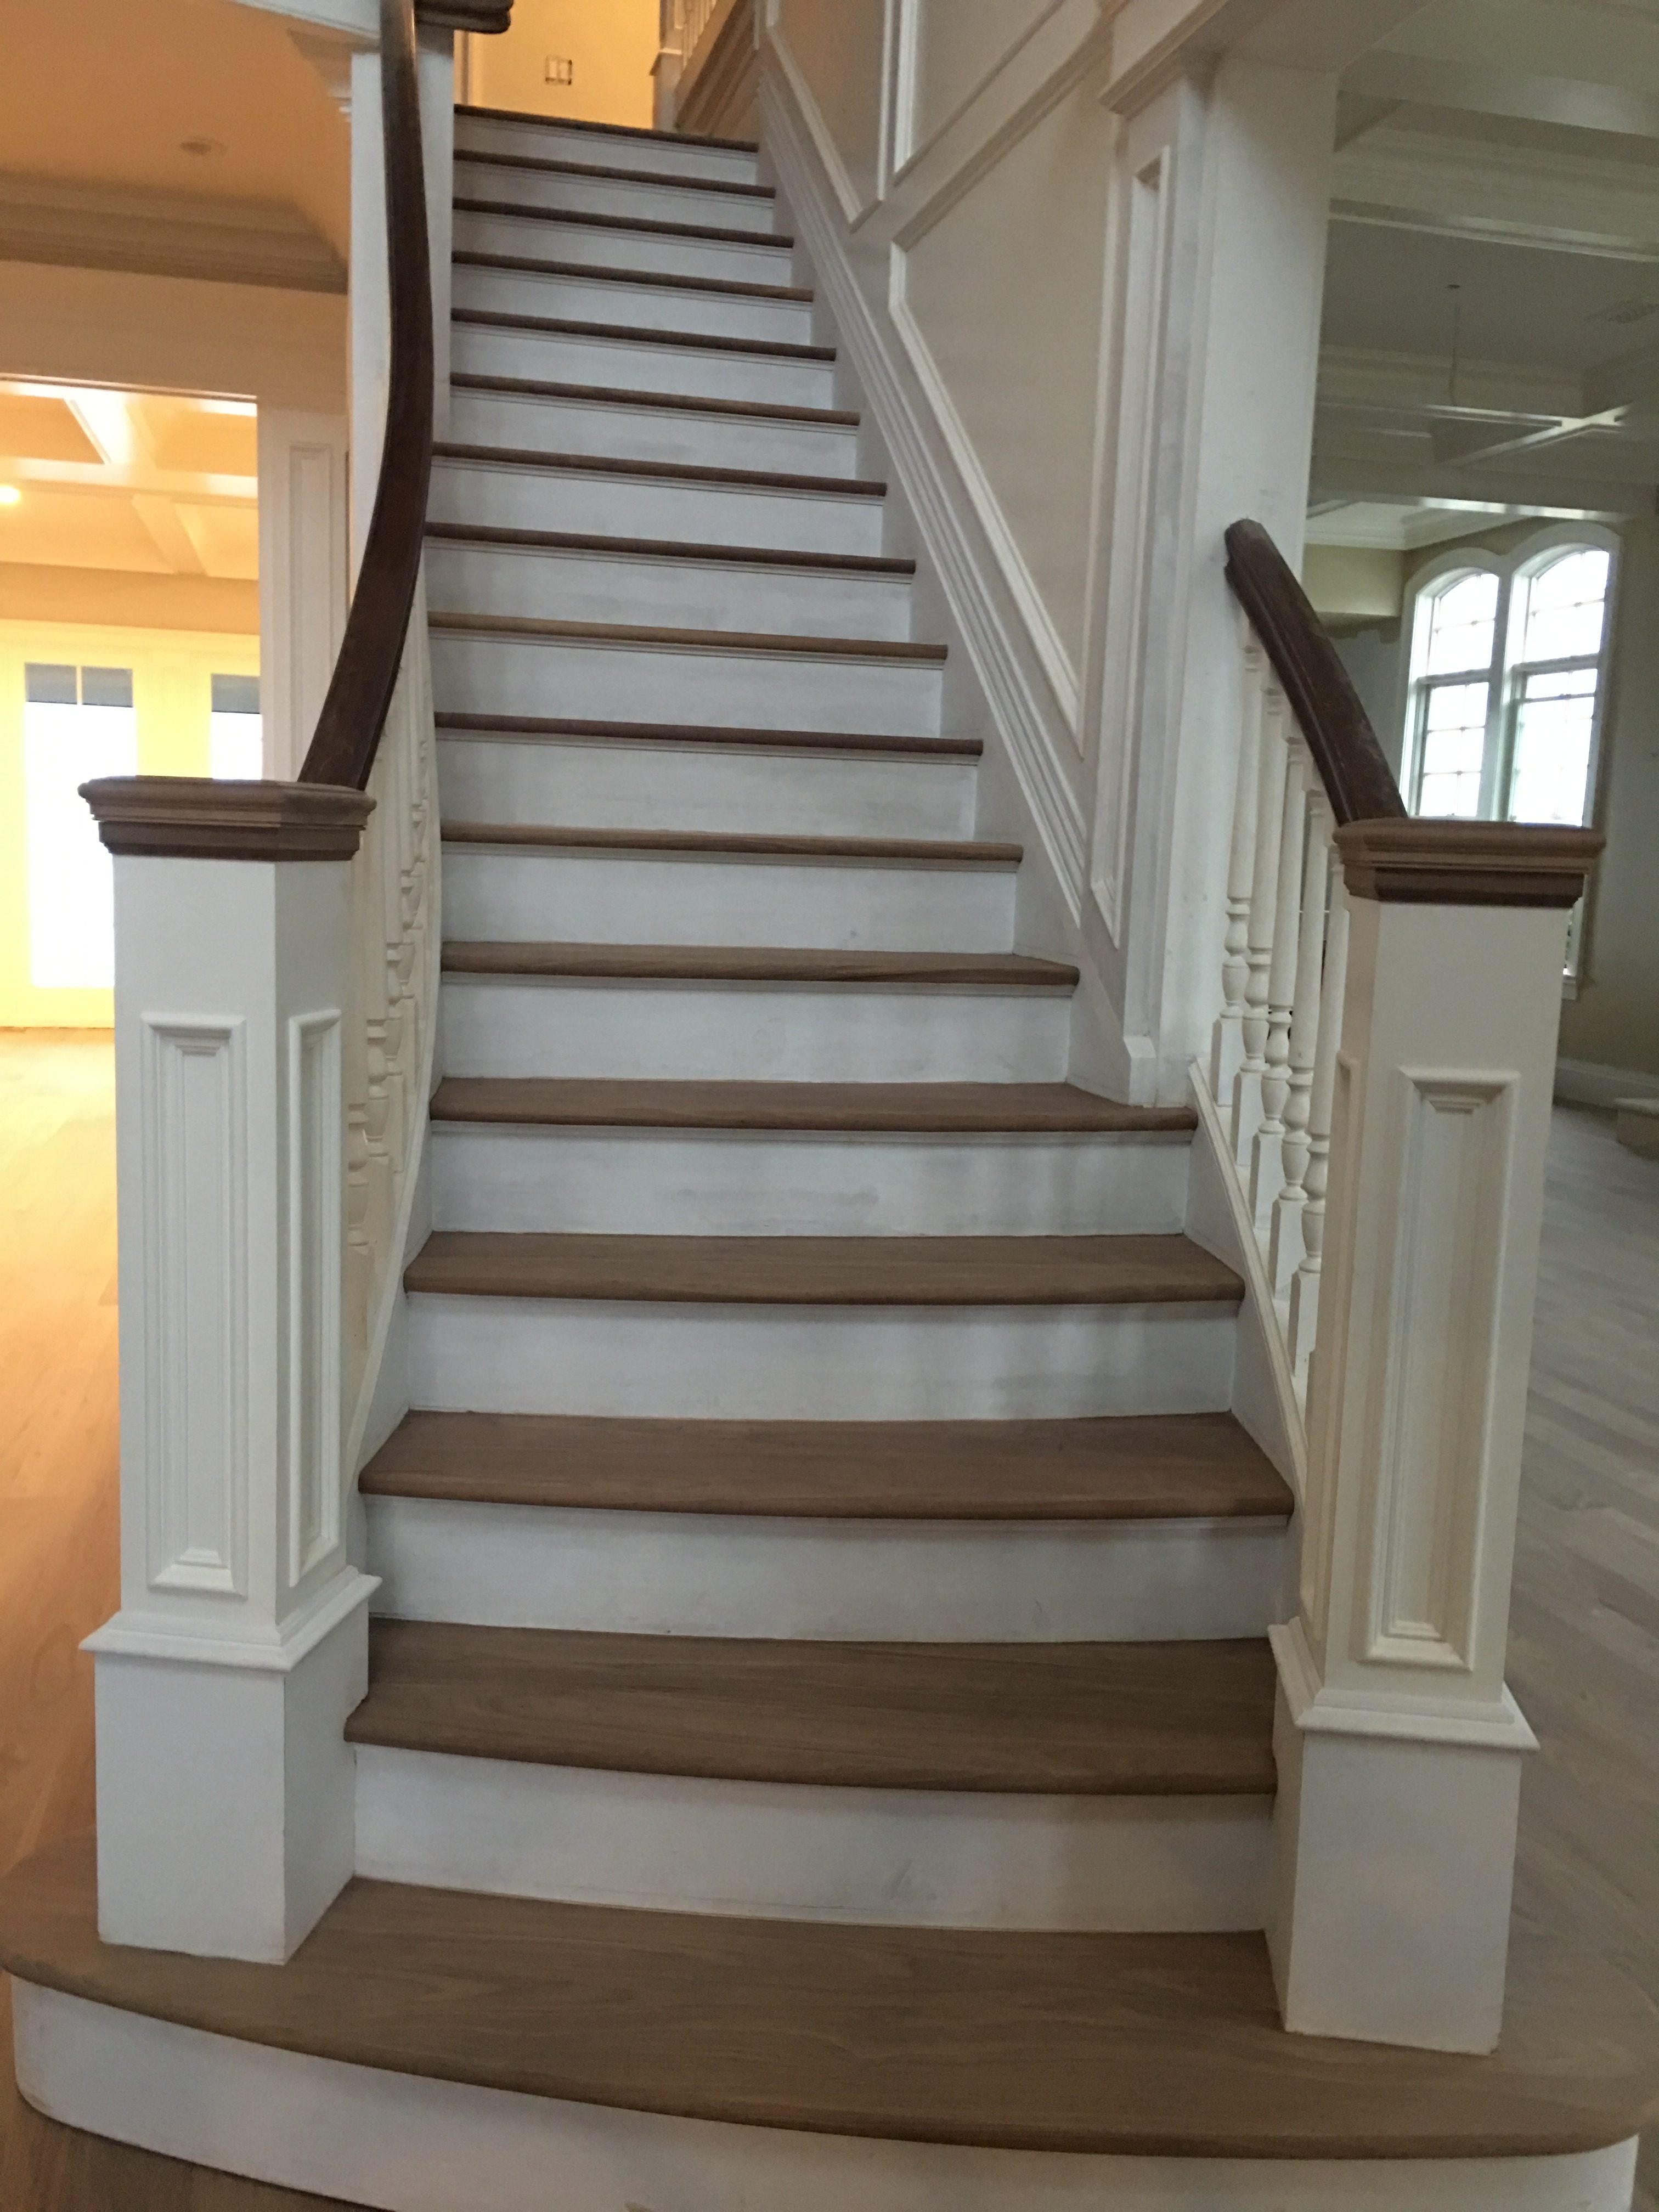 Gers flooring west long branch New Jersey